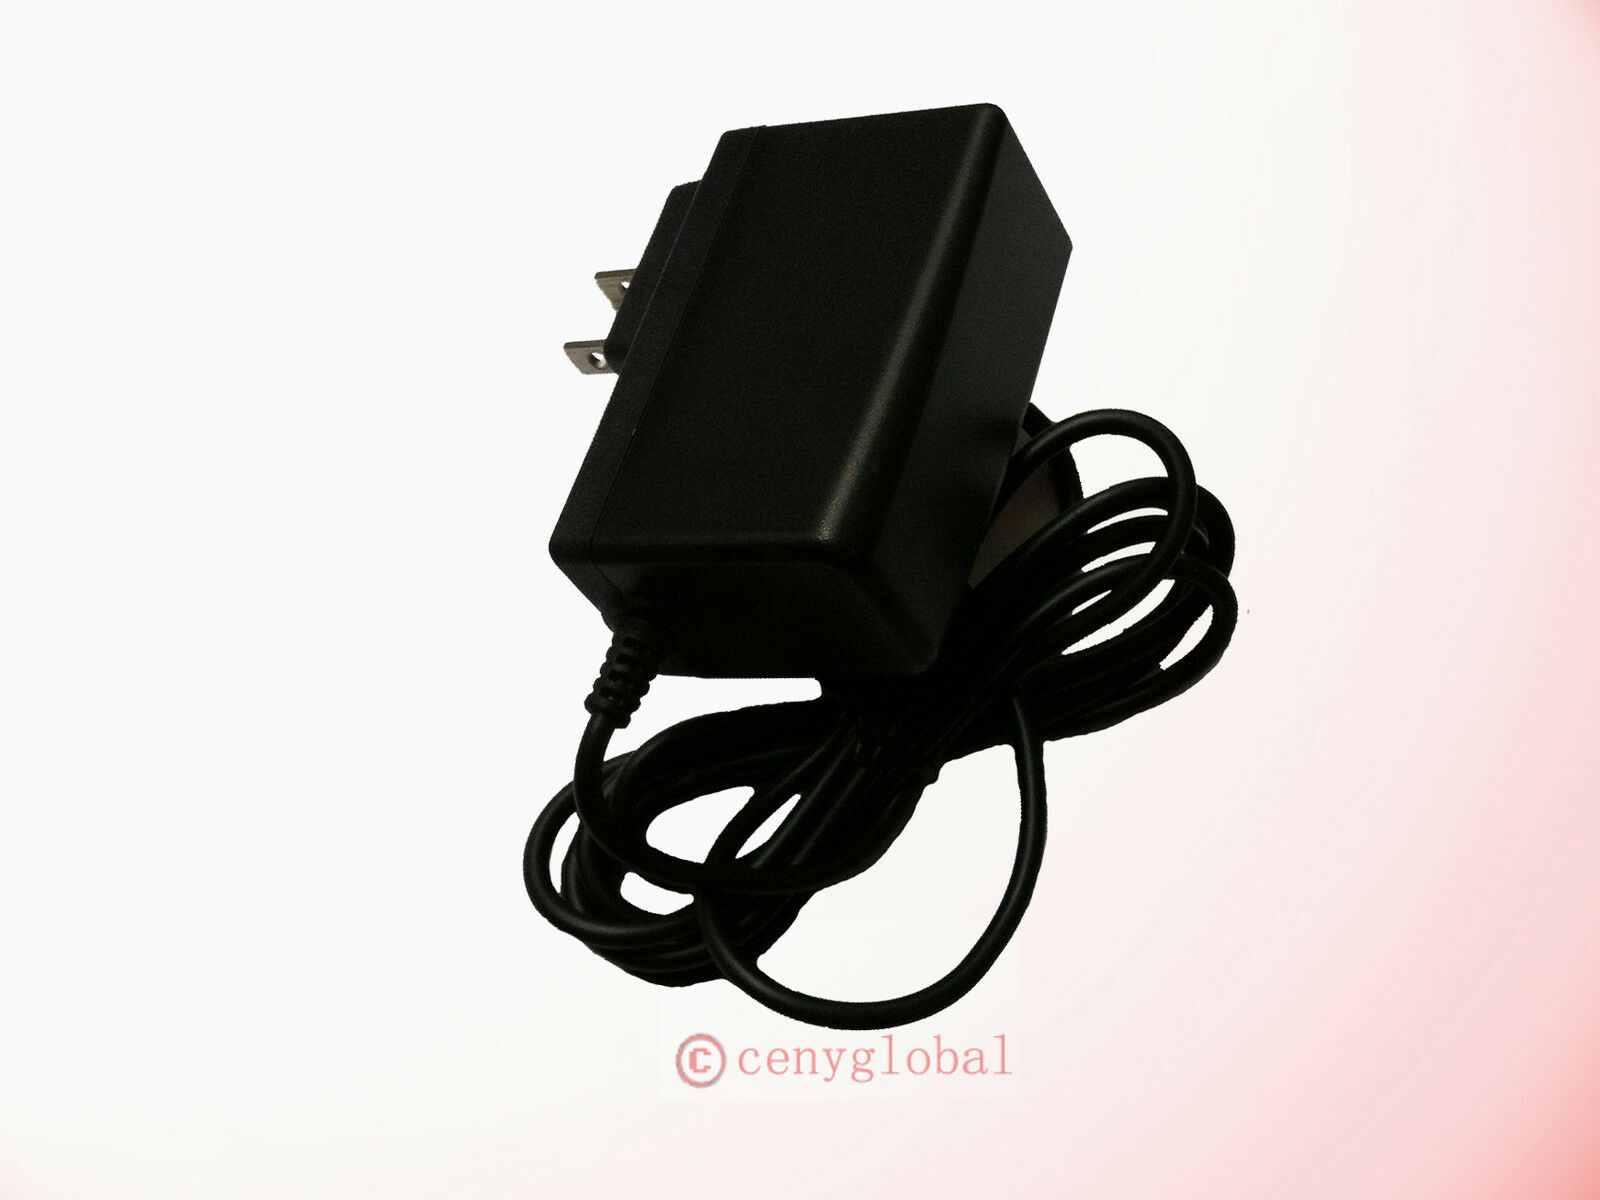 24V Power adapter Charger for bObsweep Bobi Vacuum Robot Cleaner Dust Sweeper